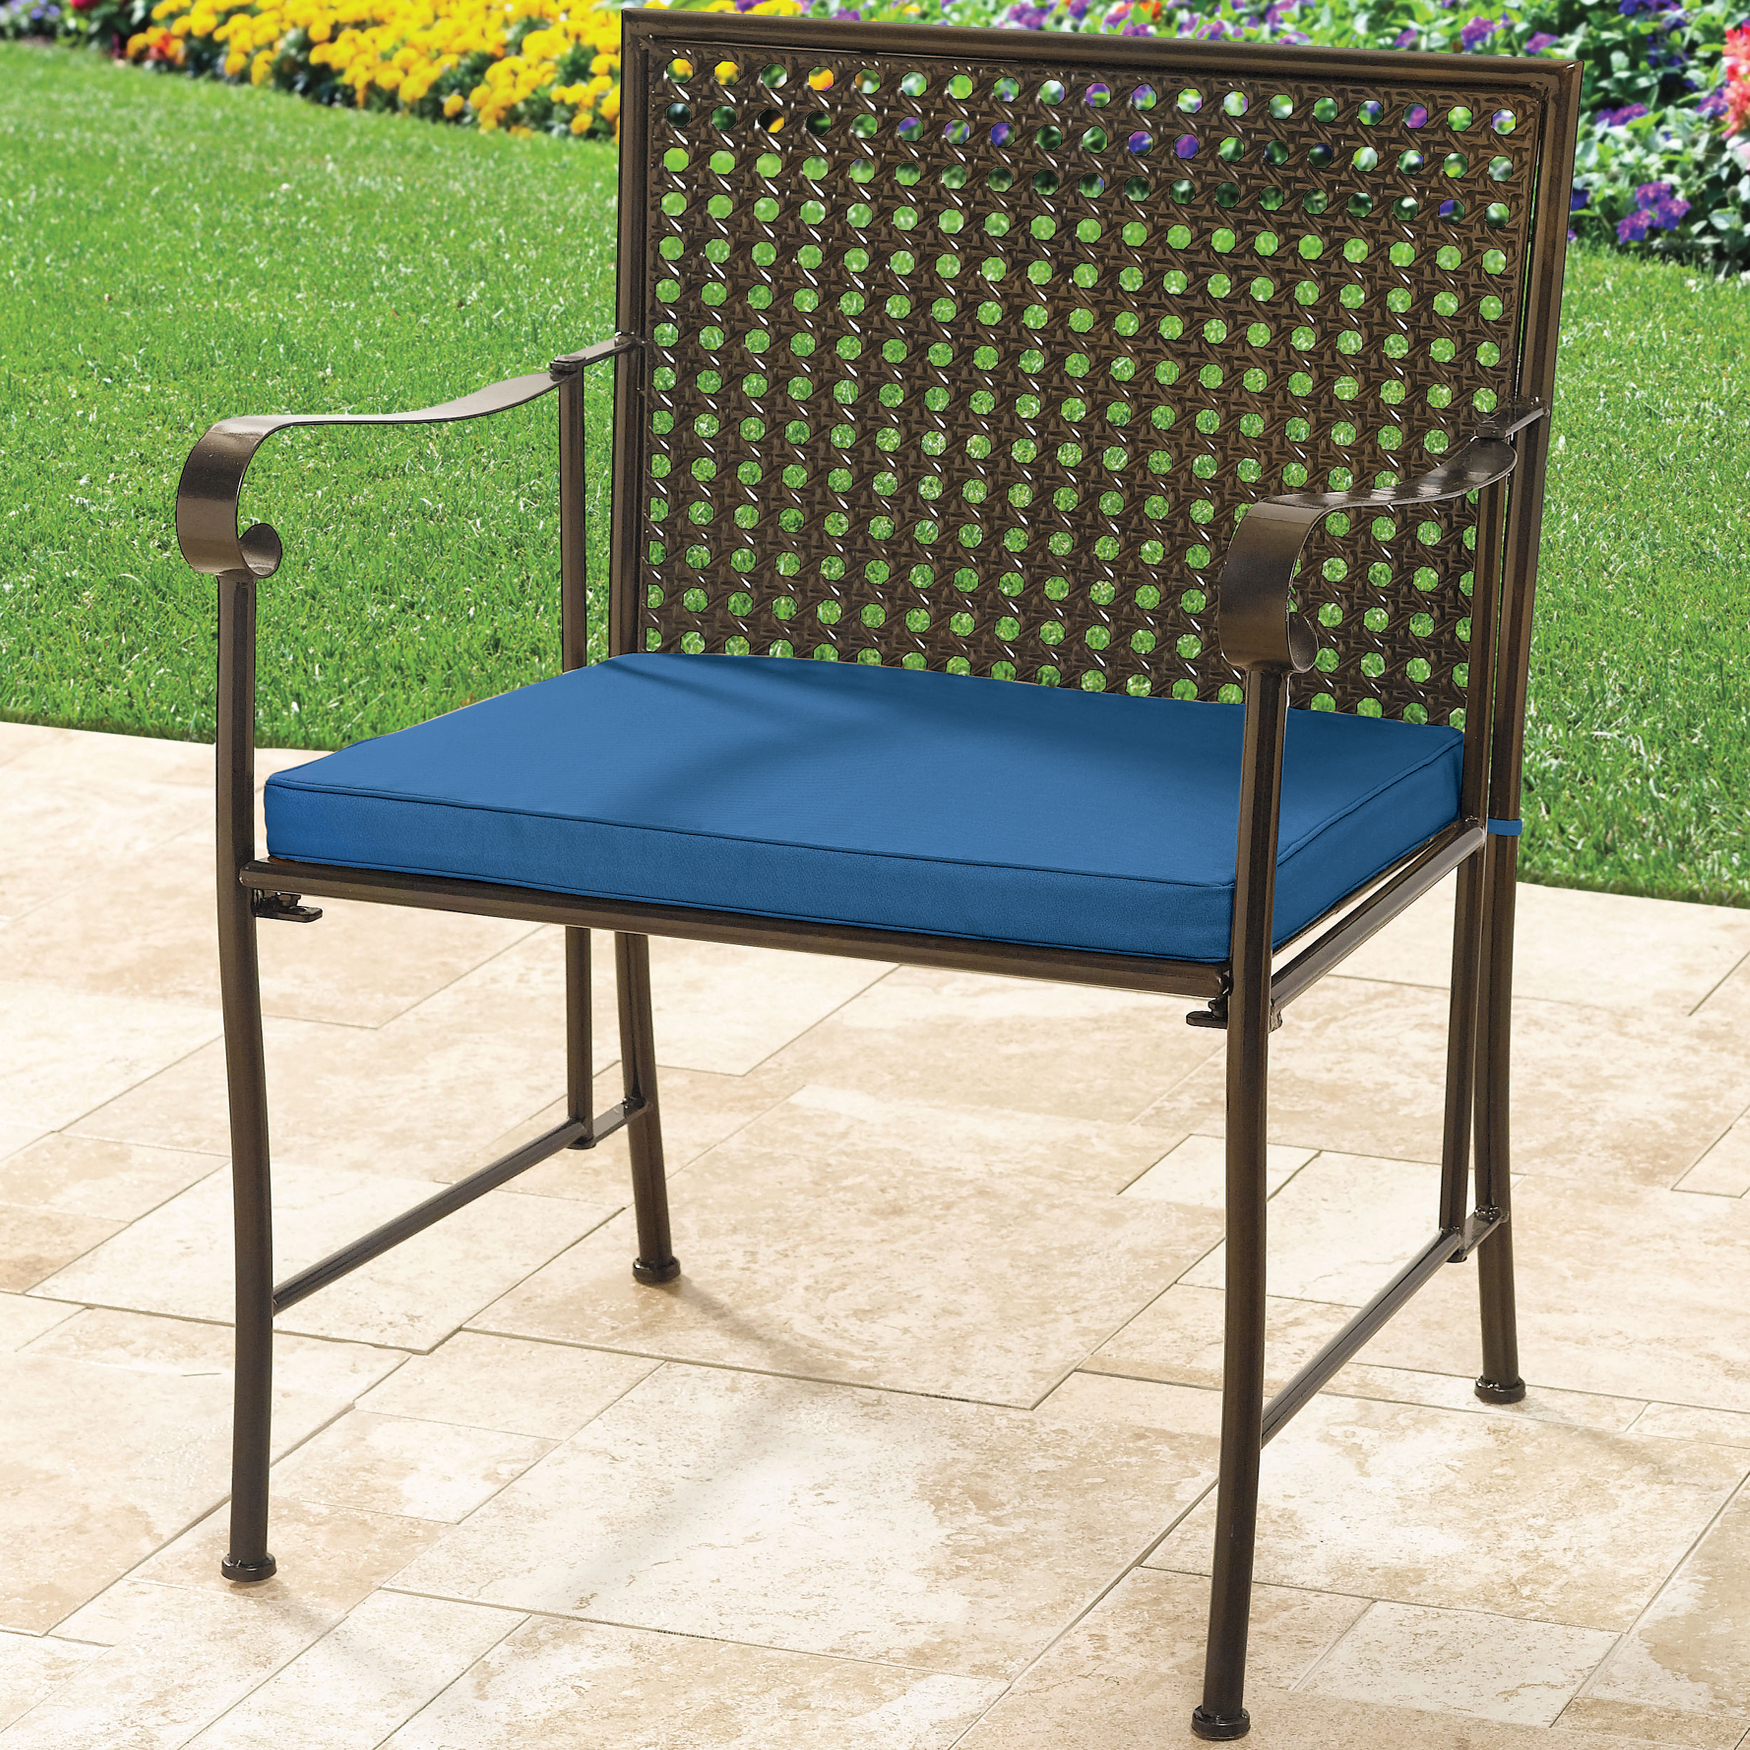 Oversized Metal Folding Chair with Cushion,